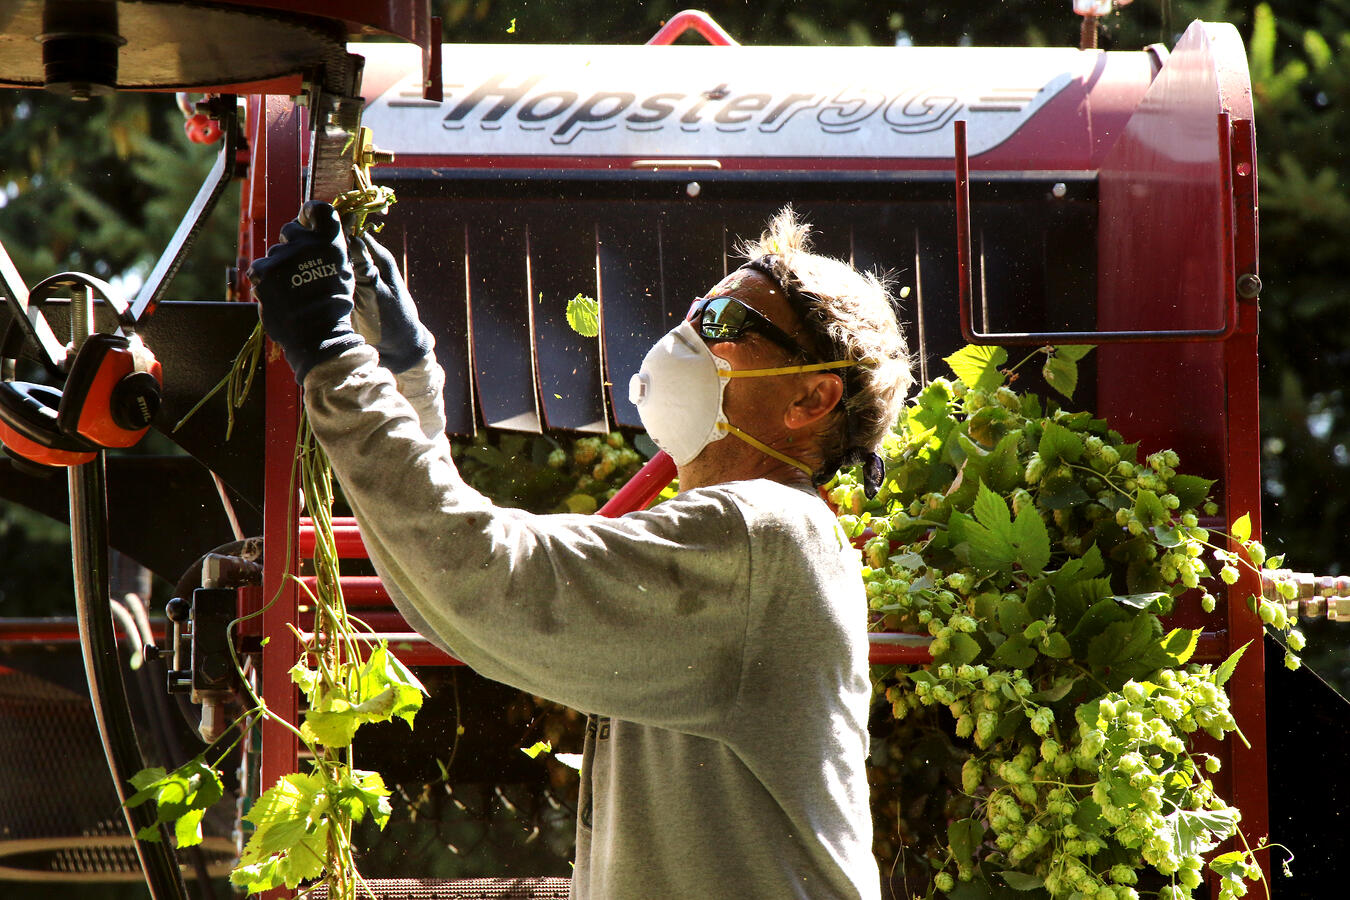 Farmer preparing a mechanical hop stripping machine for action with hops at the ready